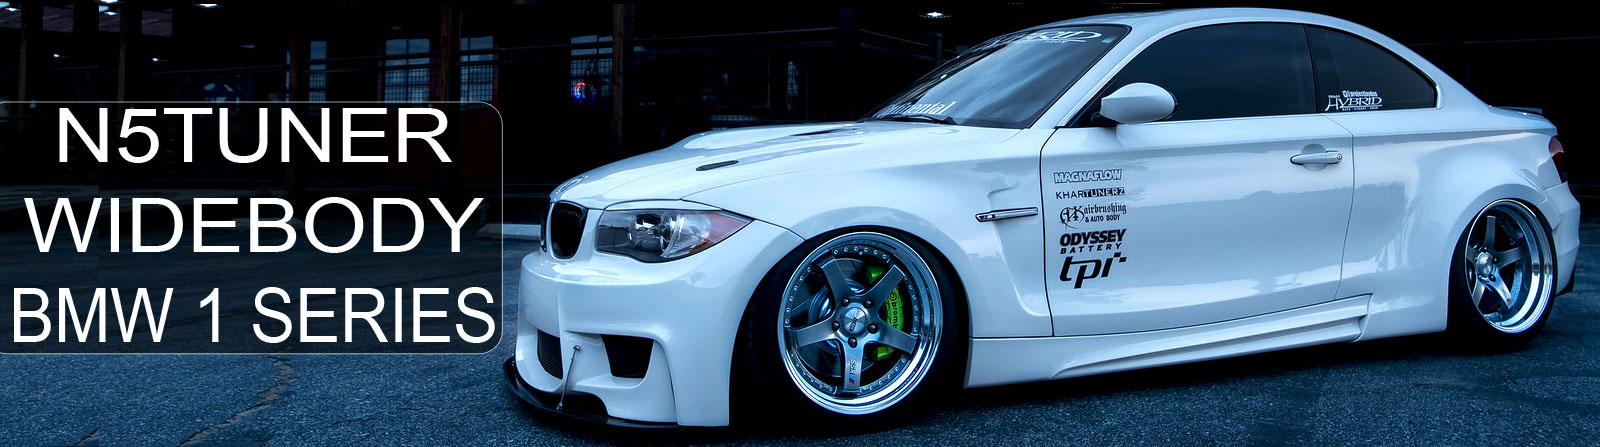 N5TUNER WIDEBODY BMW 1 SERIES